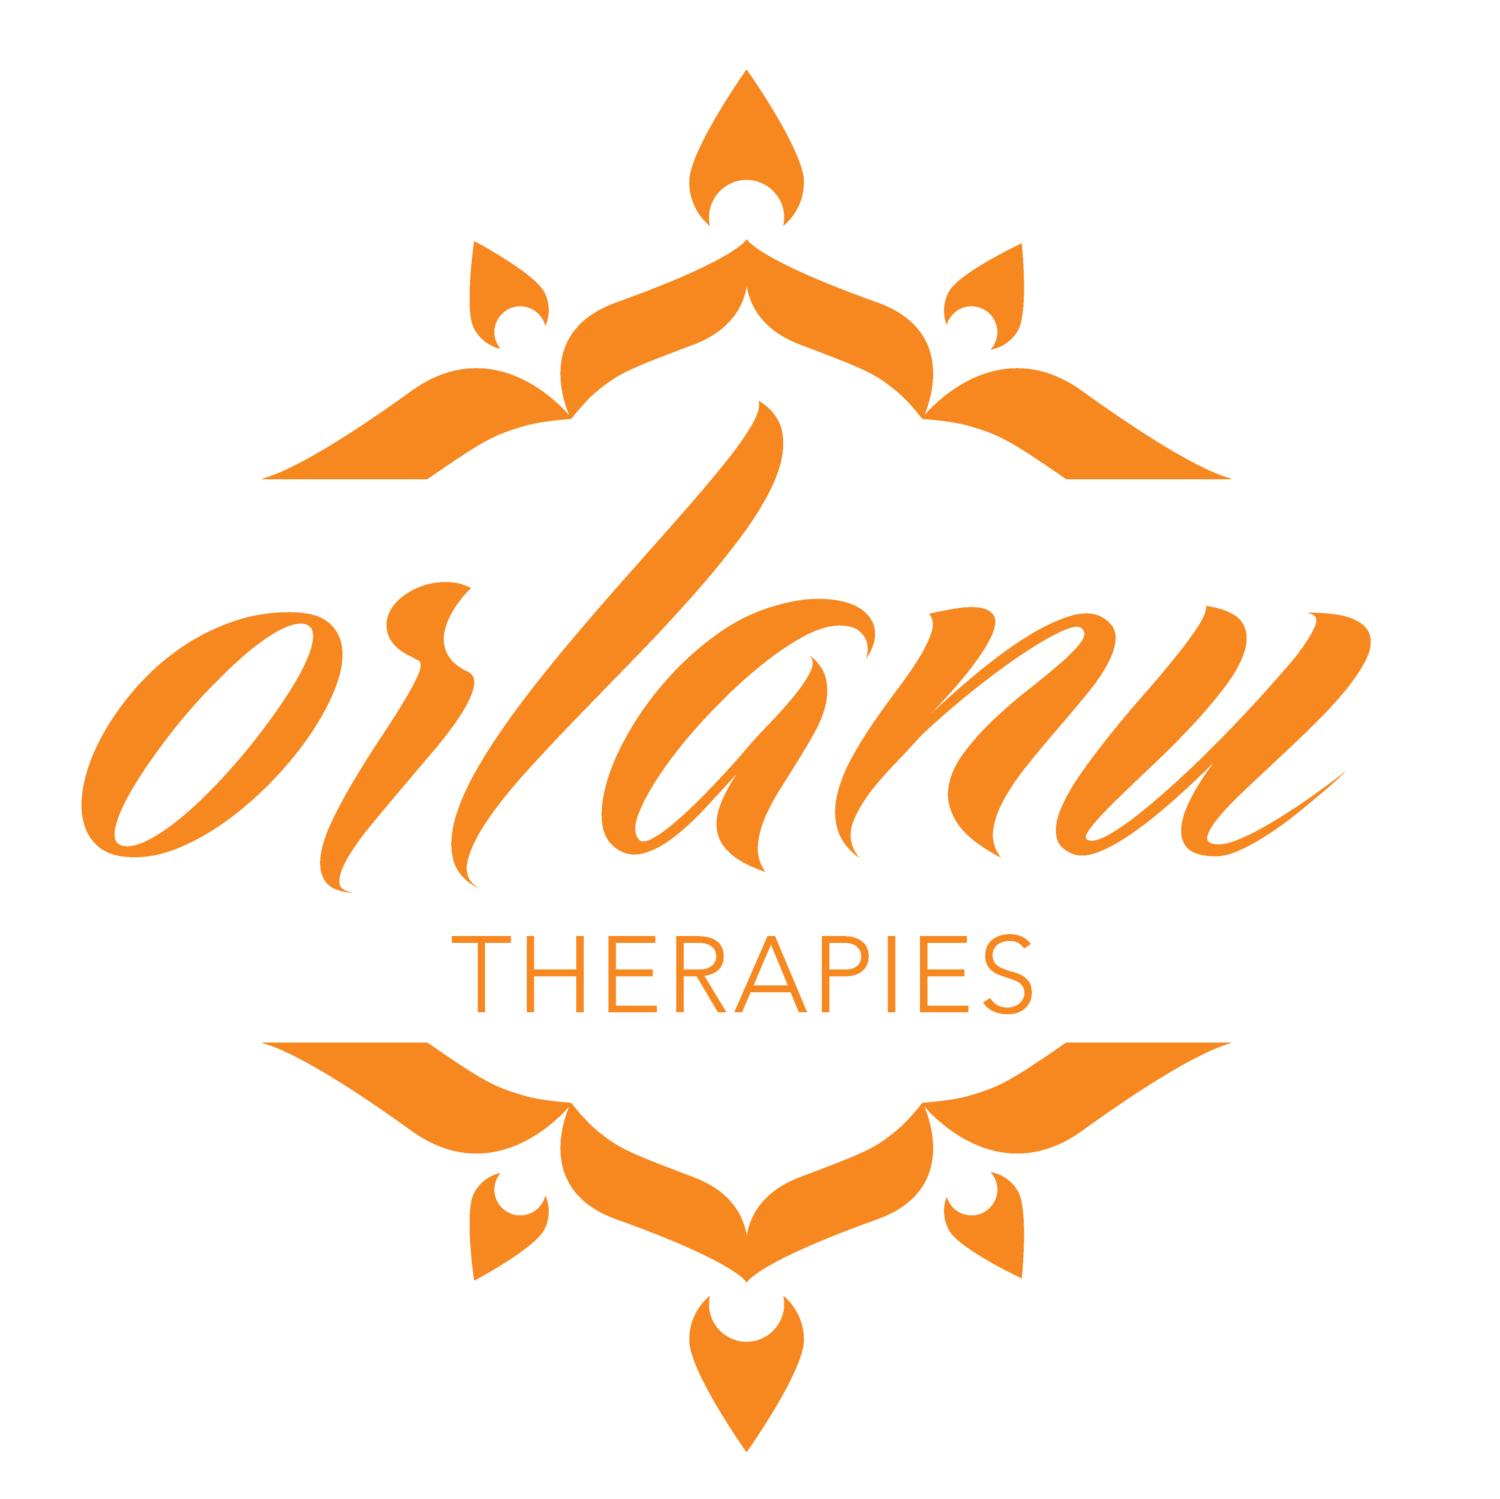 Orlanu Therapies